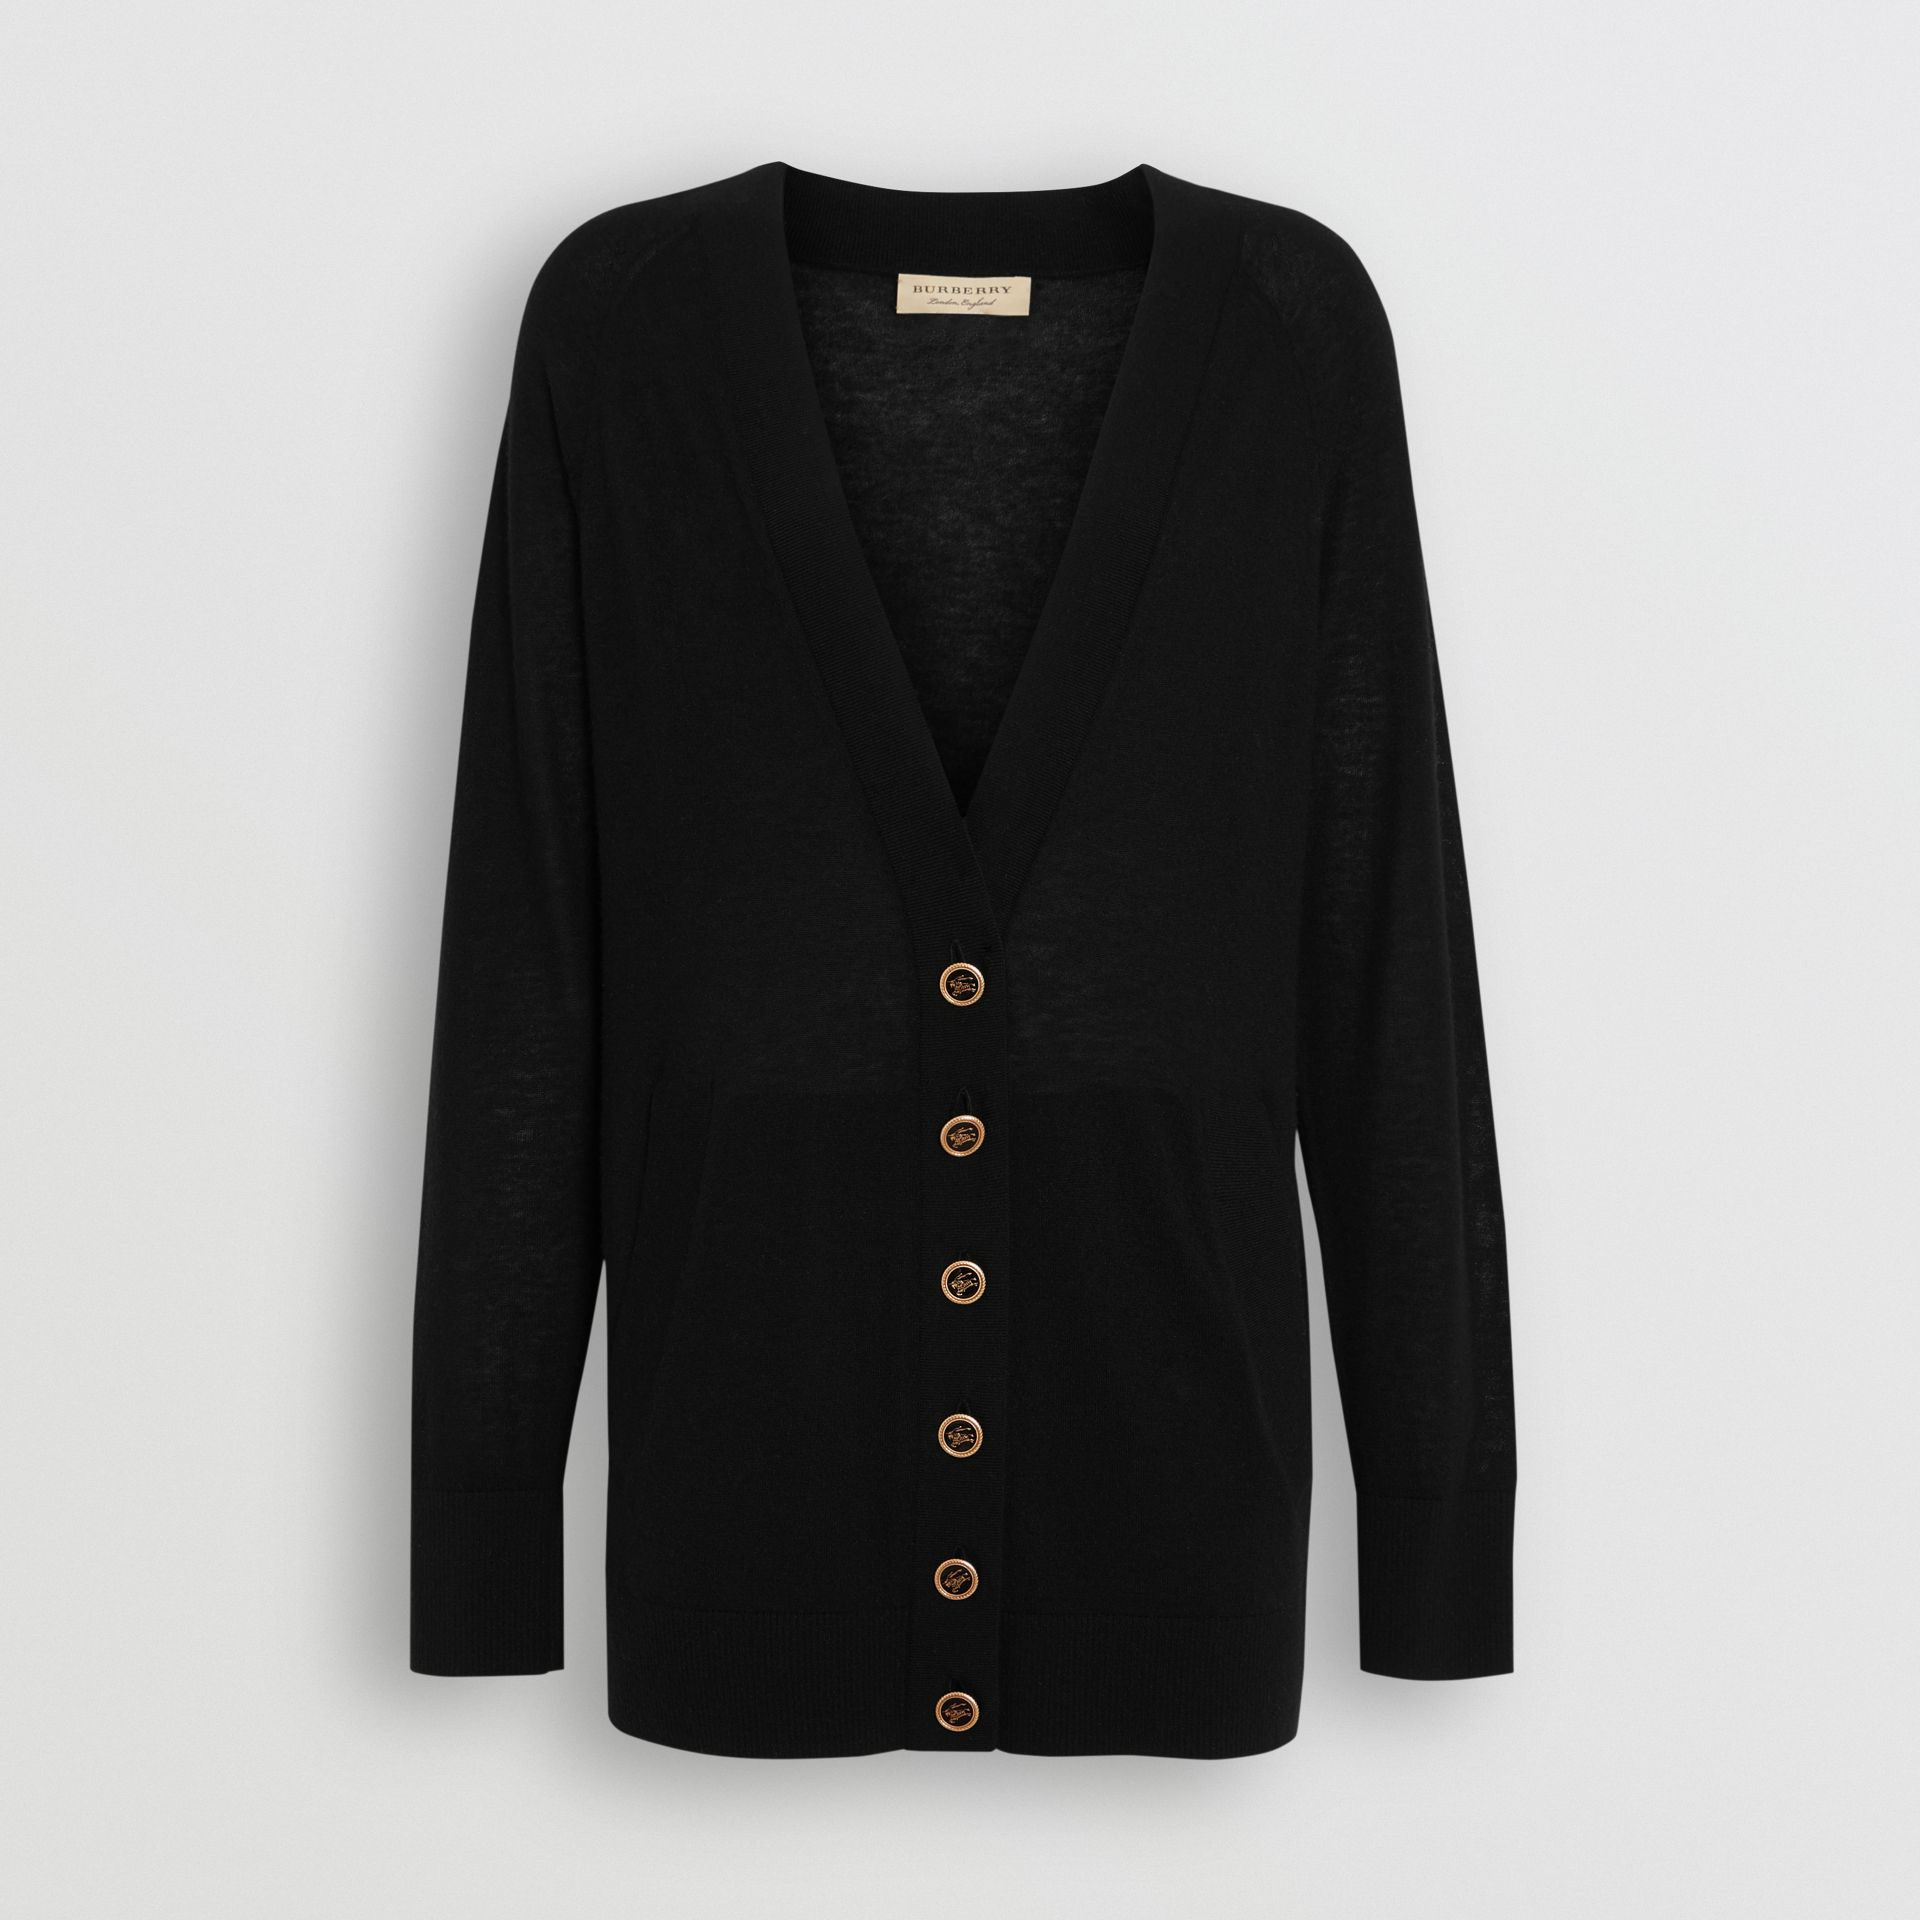 Cashmere V-neck Cardigan in Black - Women | Burberry - gallery image 3